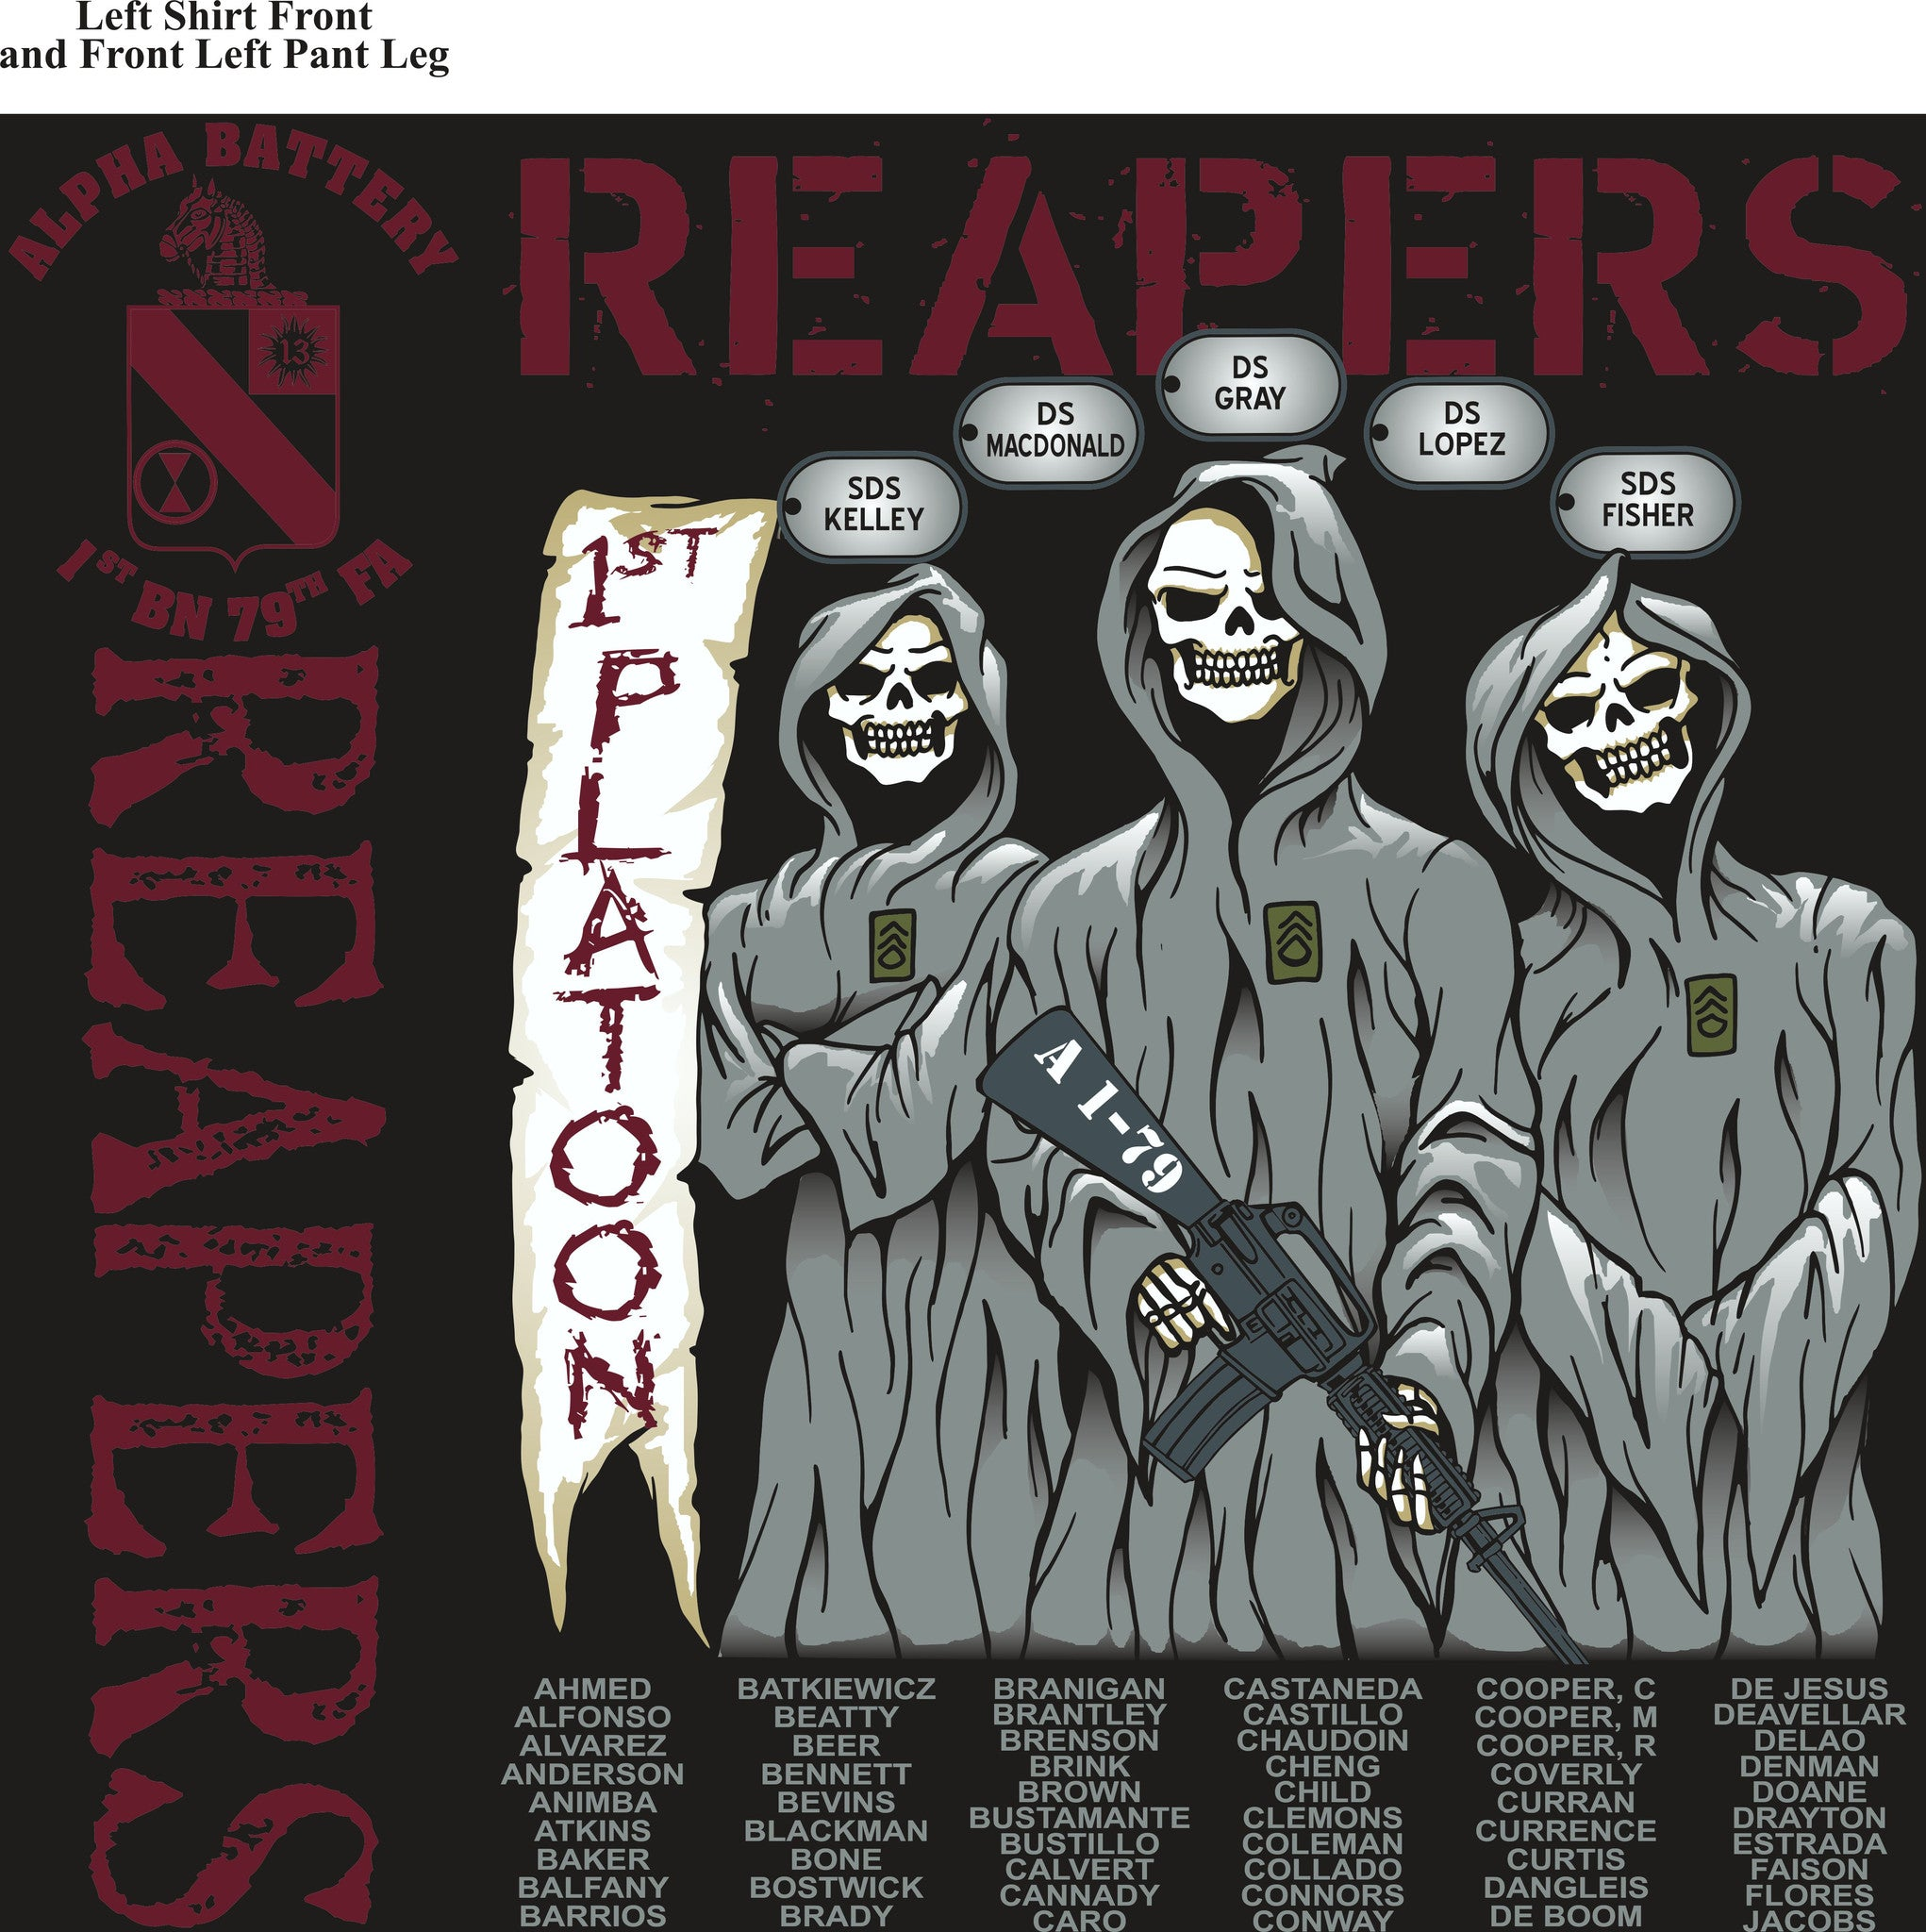 PLATOON SHIRTS (2nd generation print) ALPHA 1st 79th REAPERS SEPT 2016